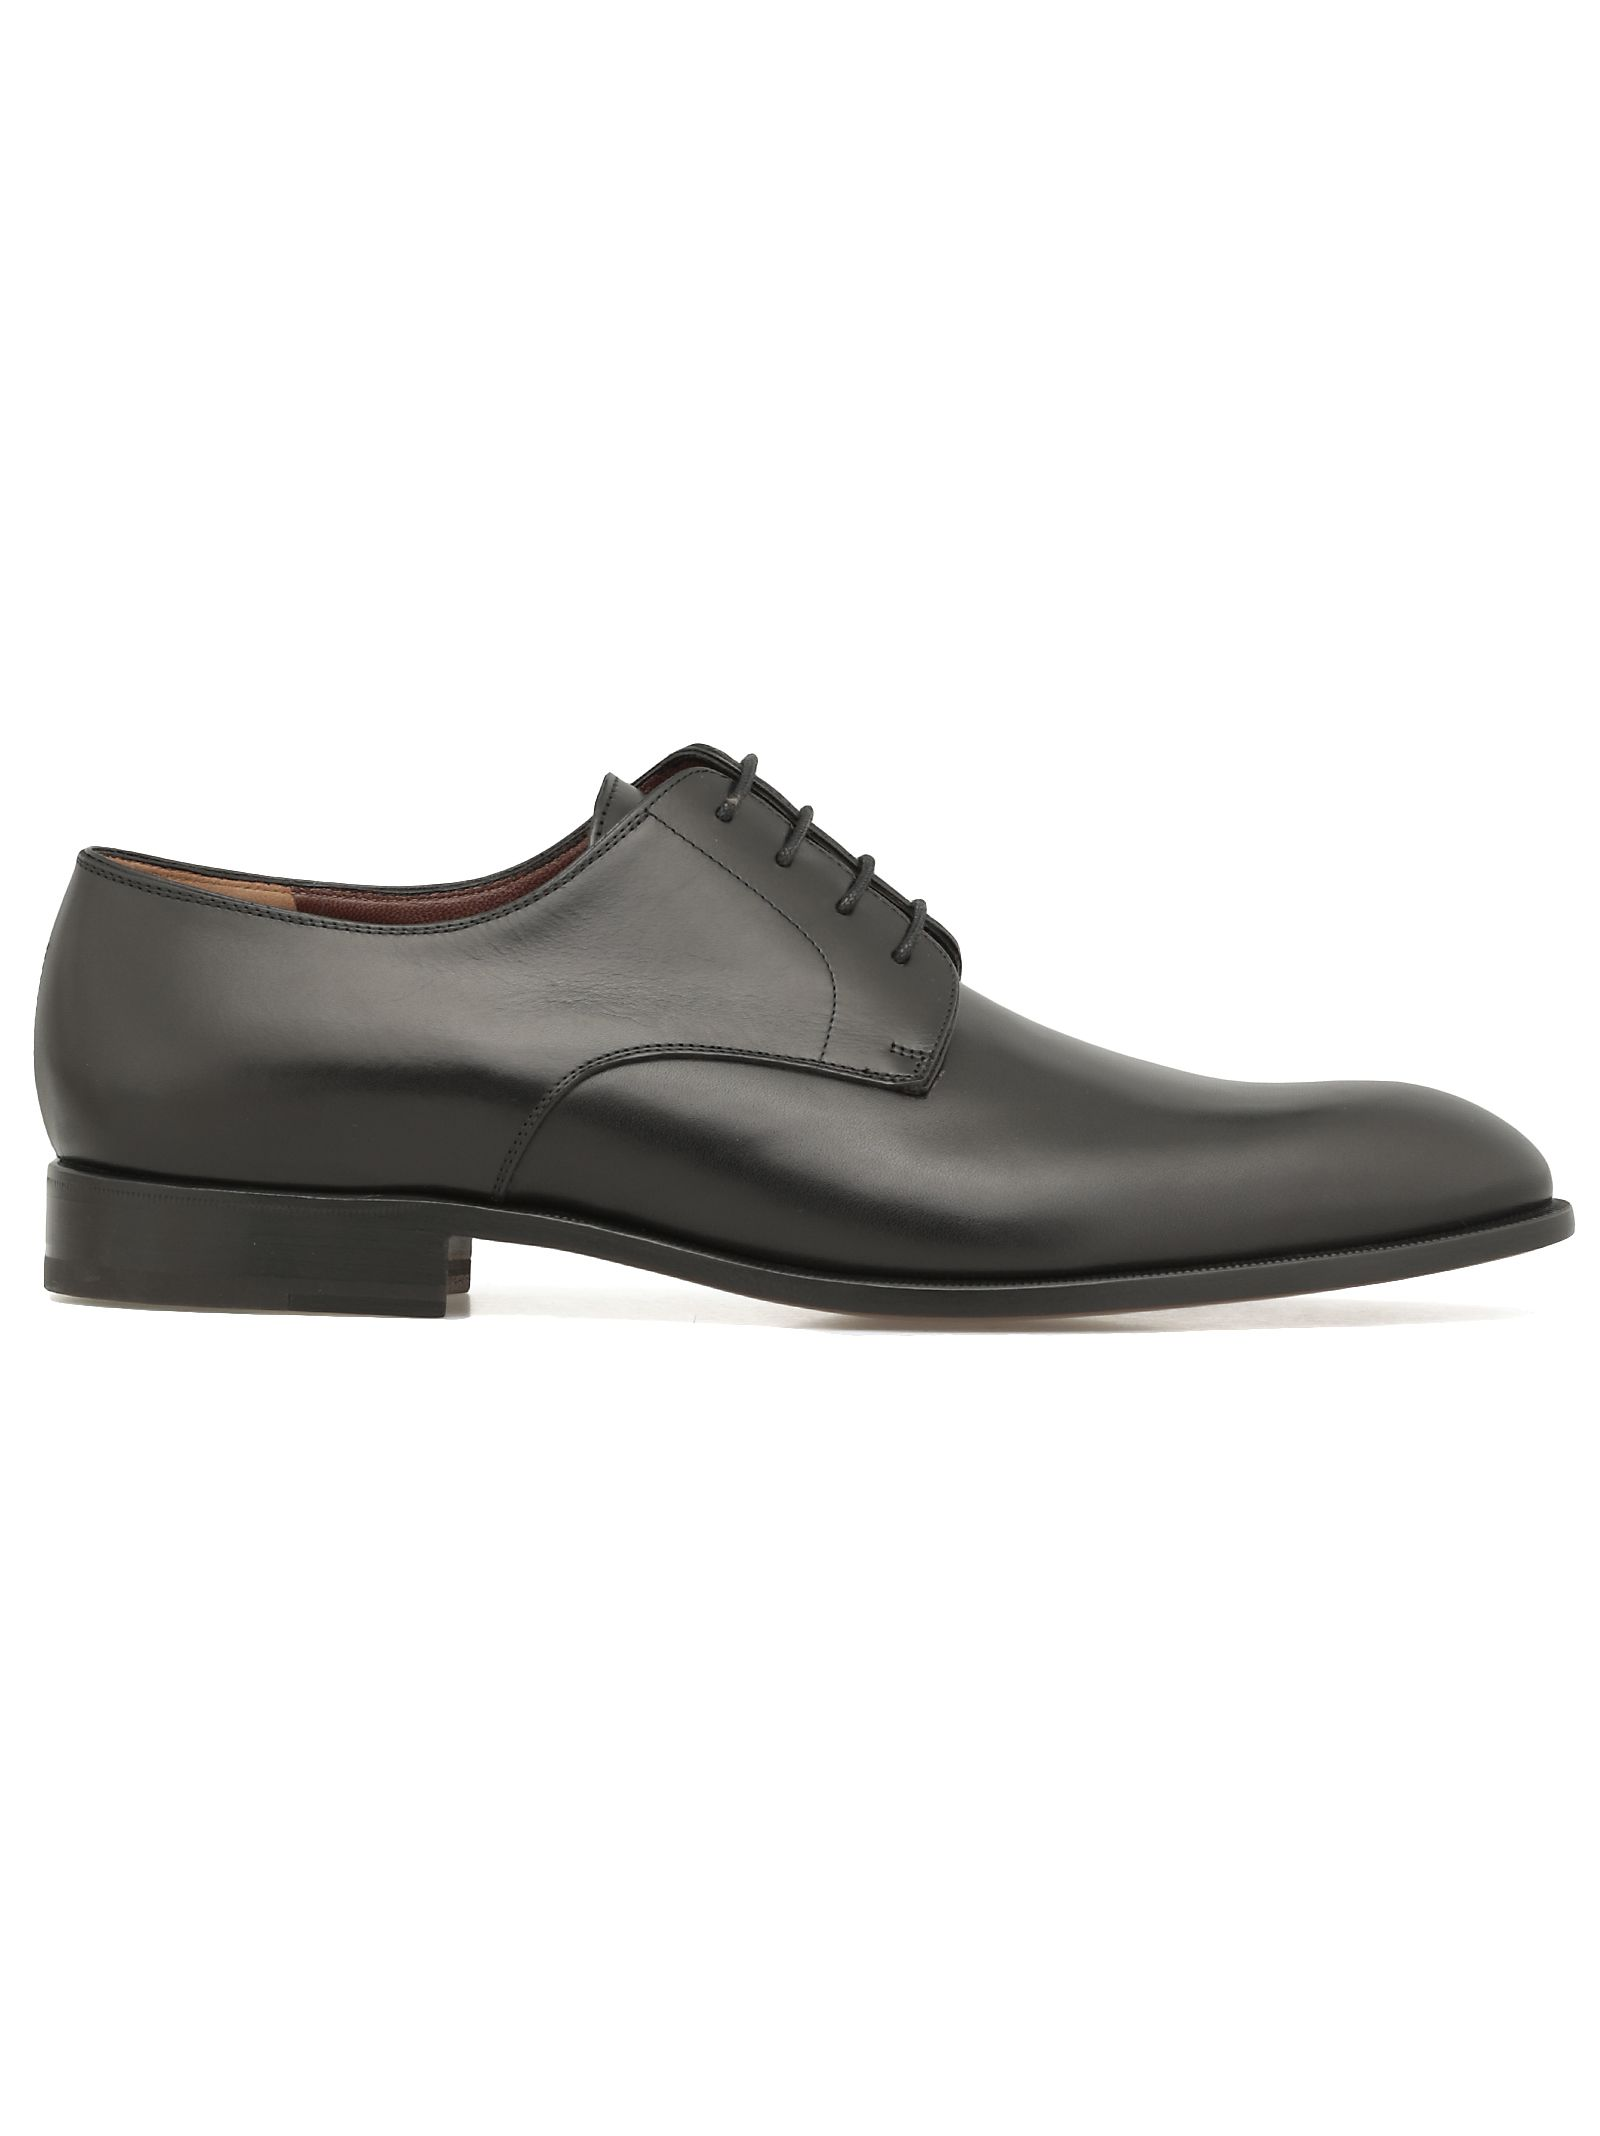 FRATELLI ROSSETTI Lace-Up Leather Shoes in Black